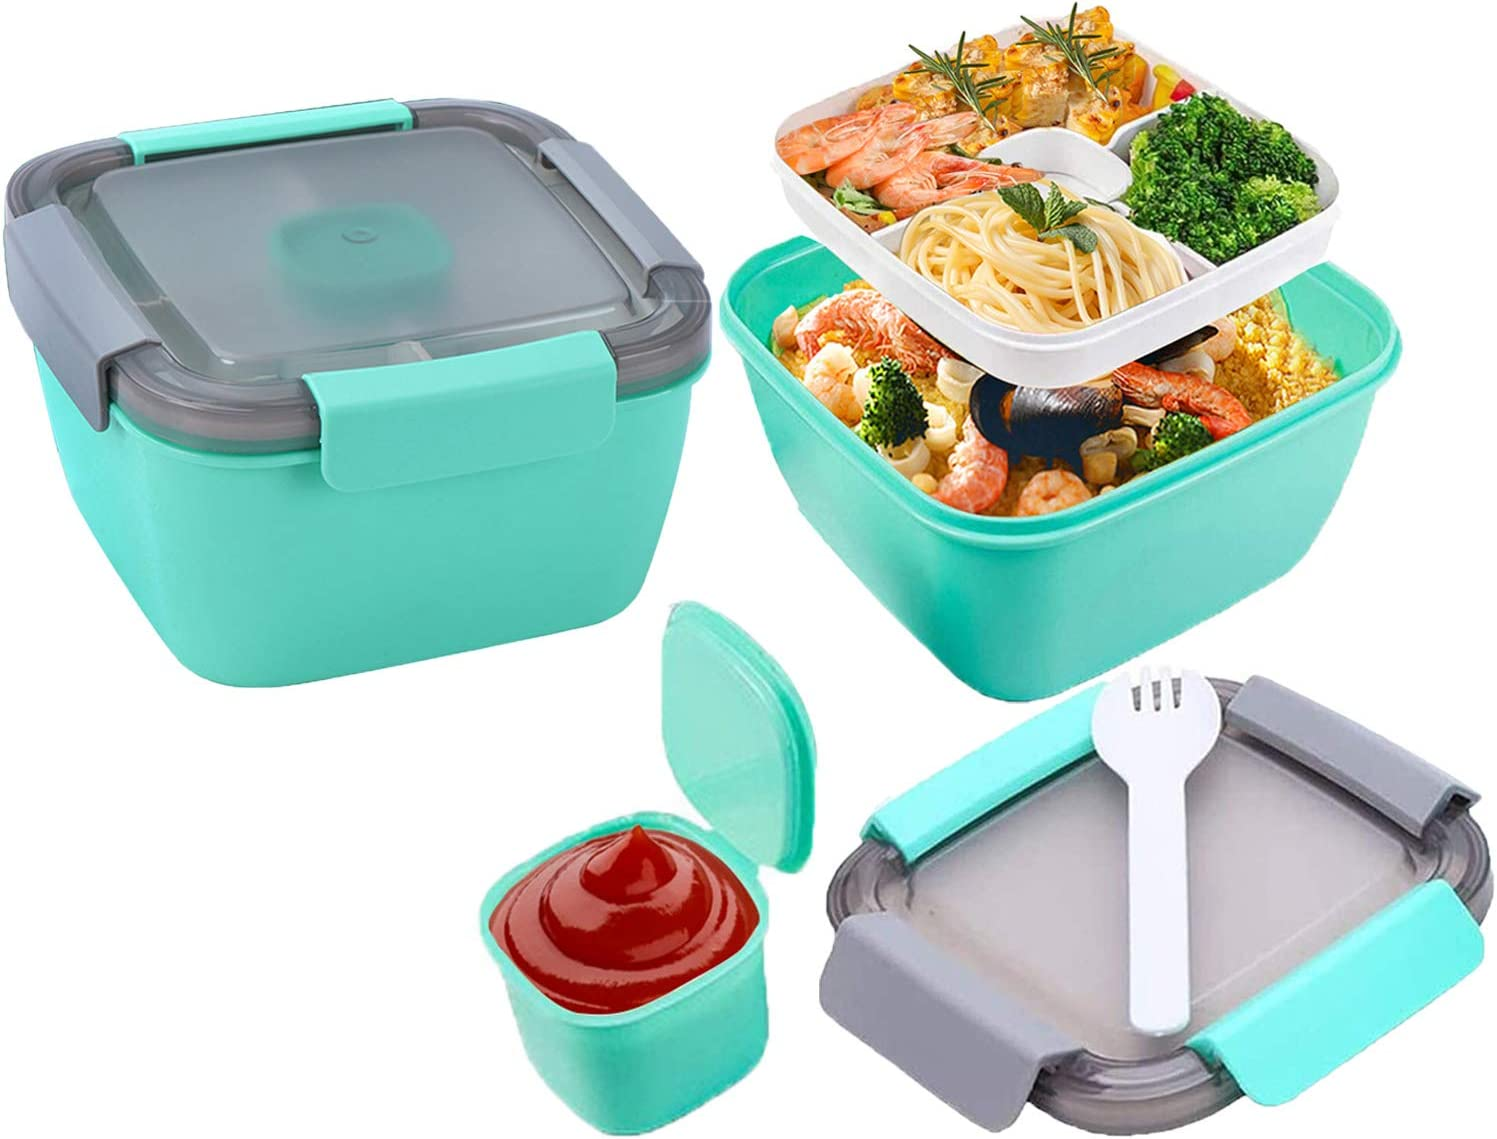 50 Nippon regular agency oz We OFFer at cheap prices Bento Boxes 3 Compartments Salad Dre with Lunch Container